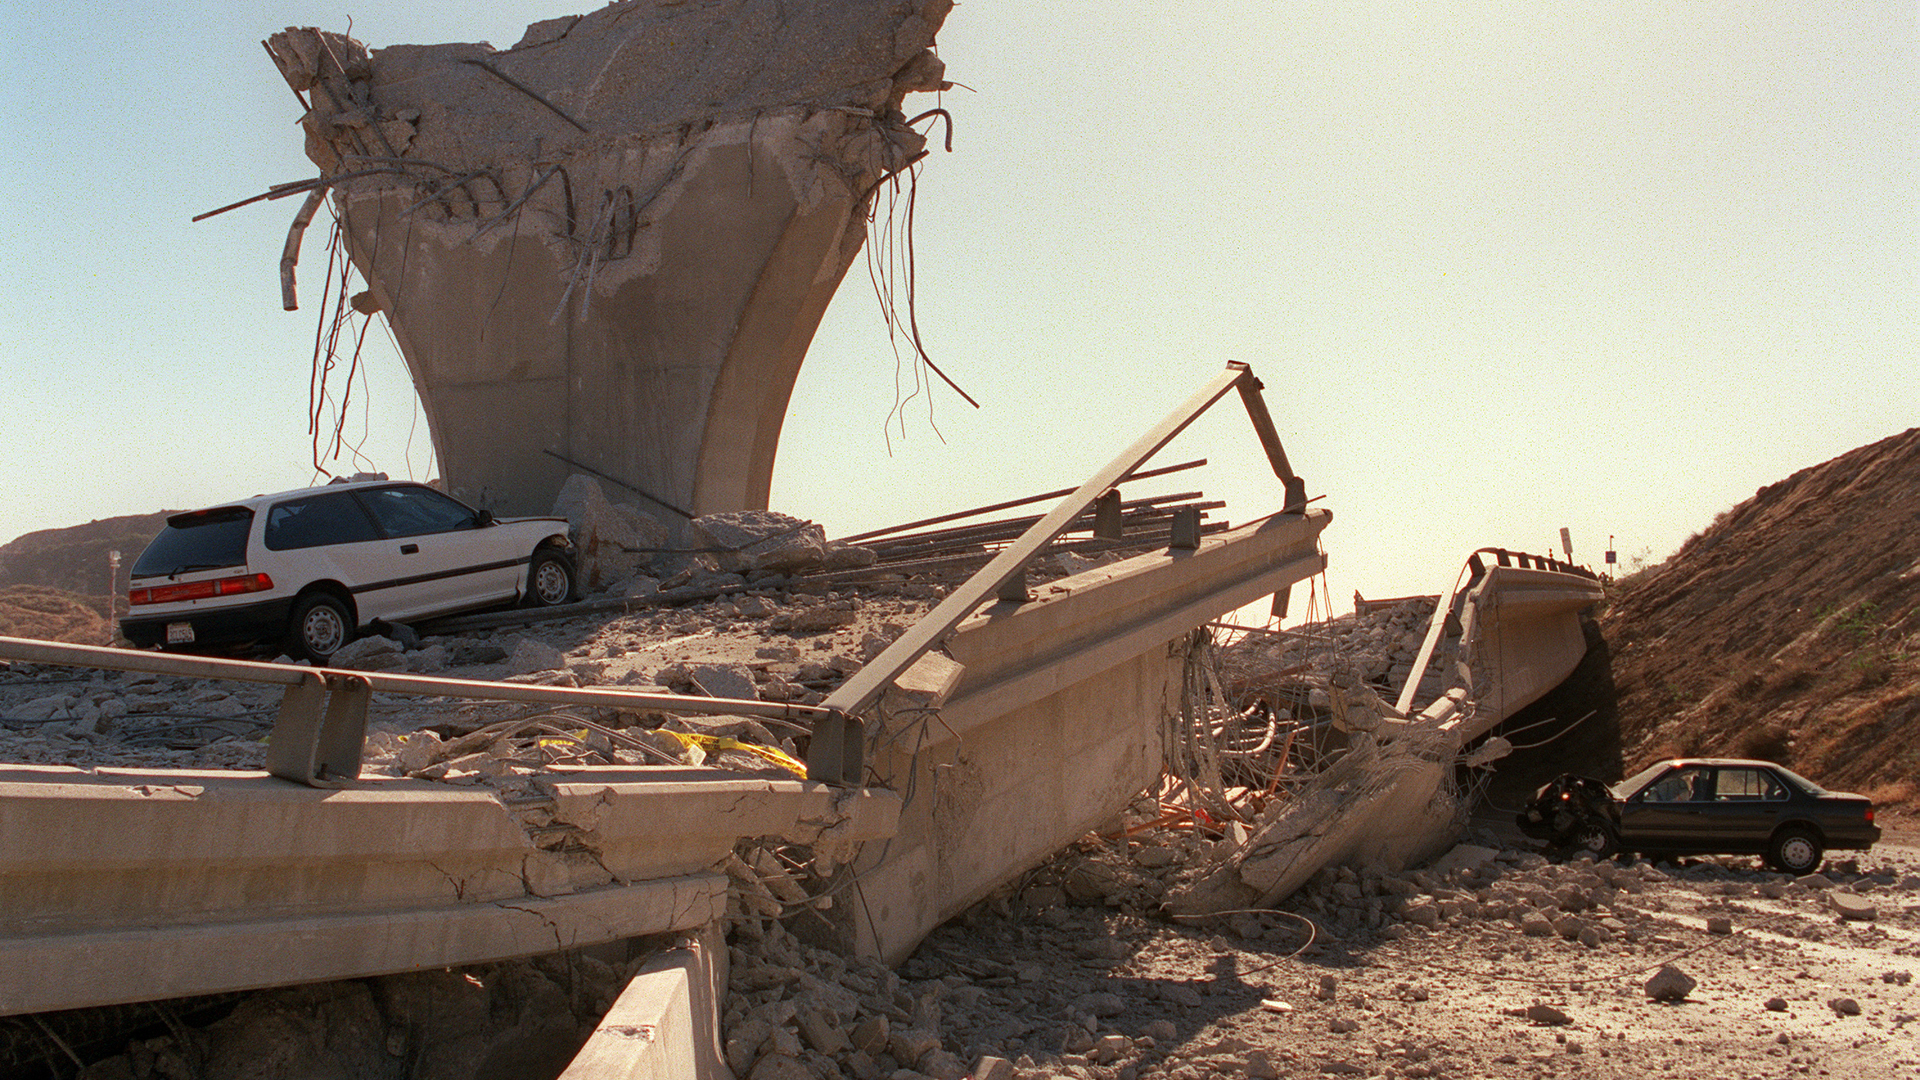 Cars lie smashed by the collapsed Interstate 5 connector few hours after Northridge earthquake, on January 17, 1994, in Sylmar. (Credit: JONATHAN NOUROK/AFP/Getty Images)